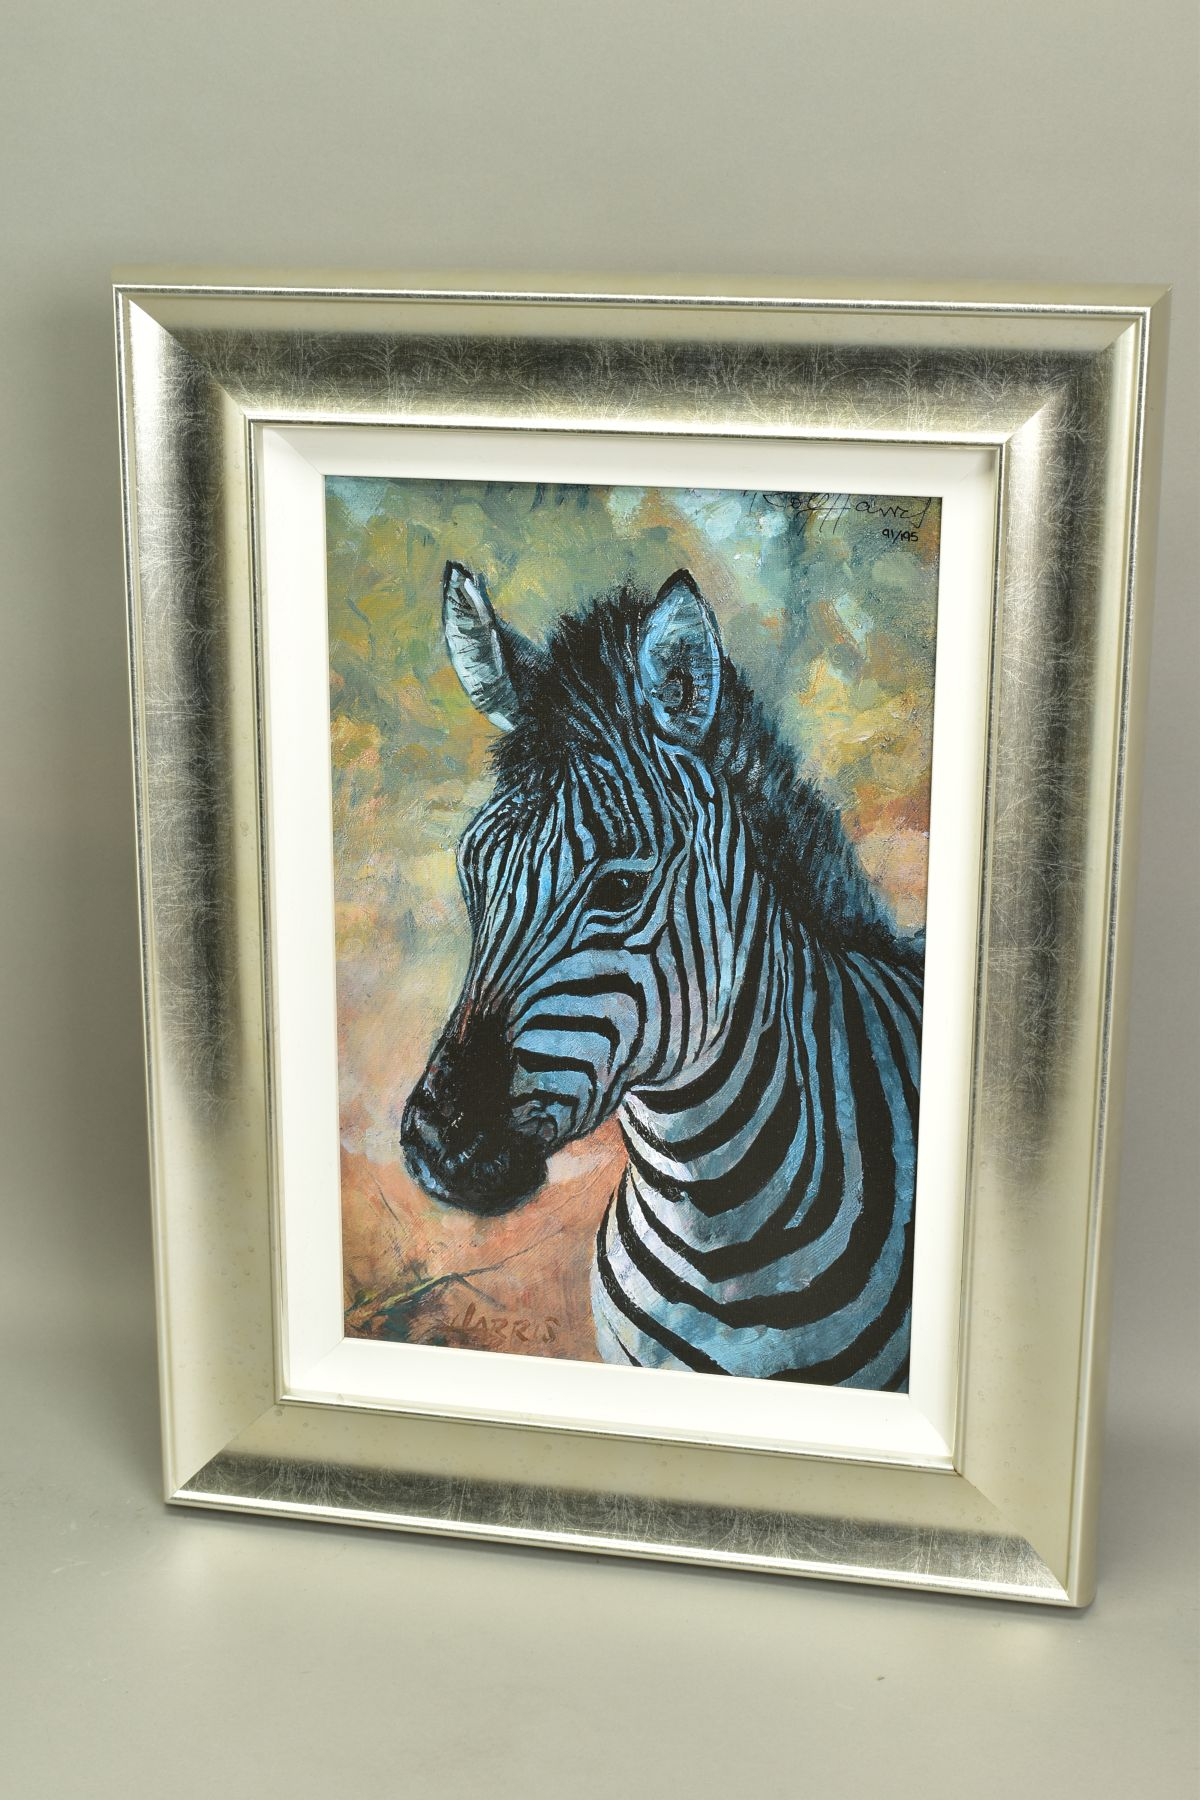 ROLF HARRIS (AUSTRALIAN 1930), 'Young Zebra', a Limited Edition print, 91/195, signed top right with - Image 4 of 5